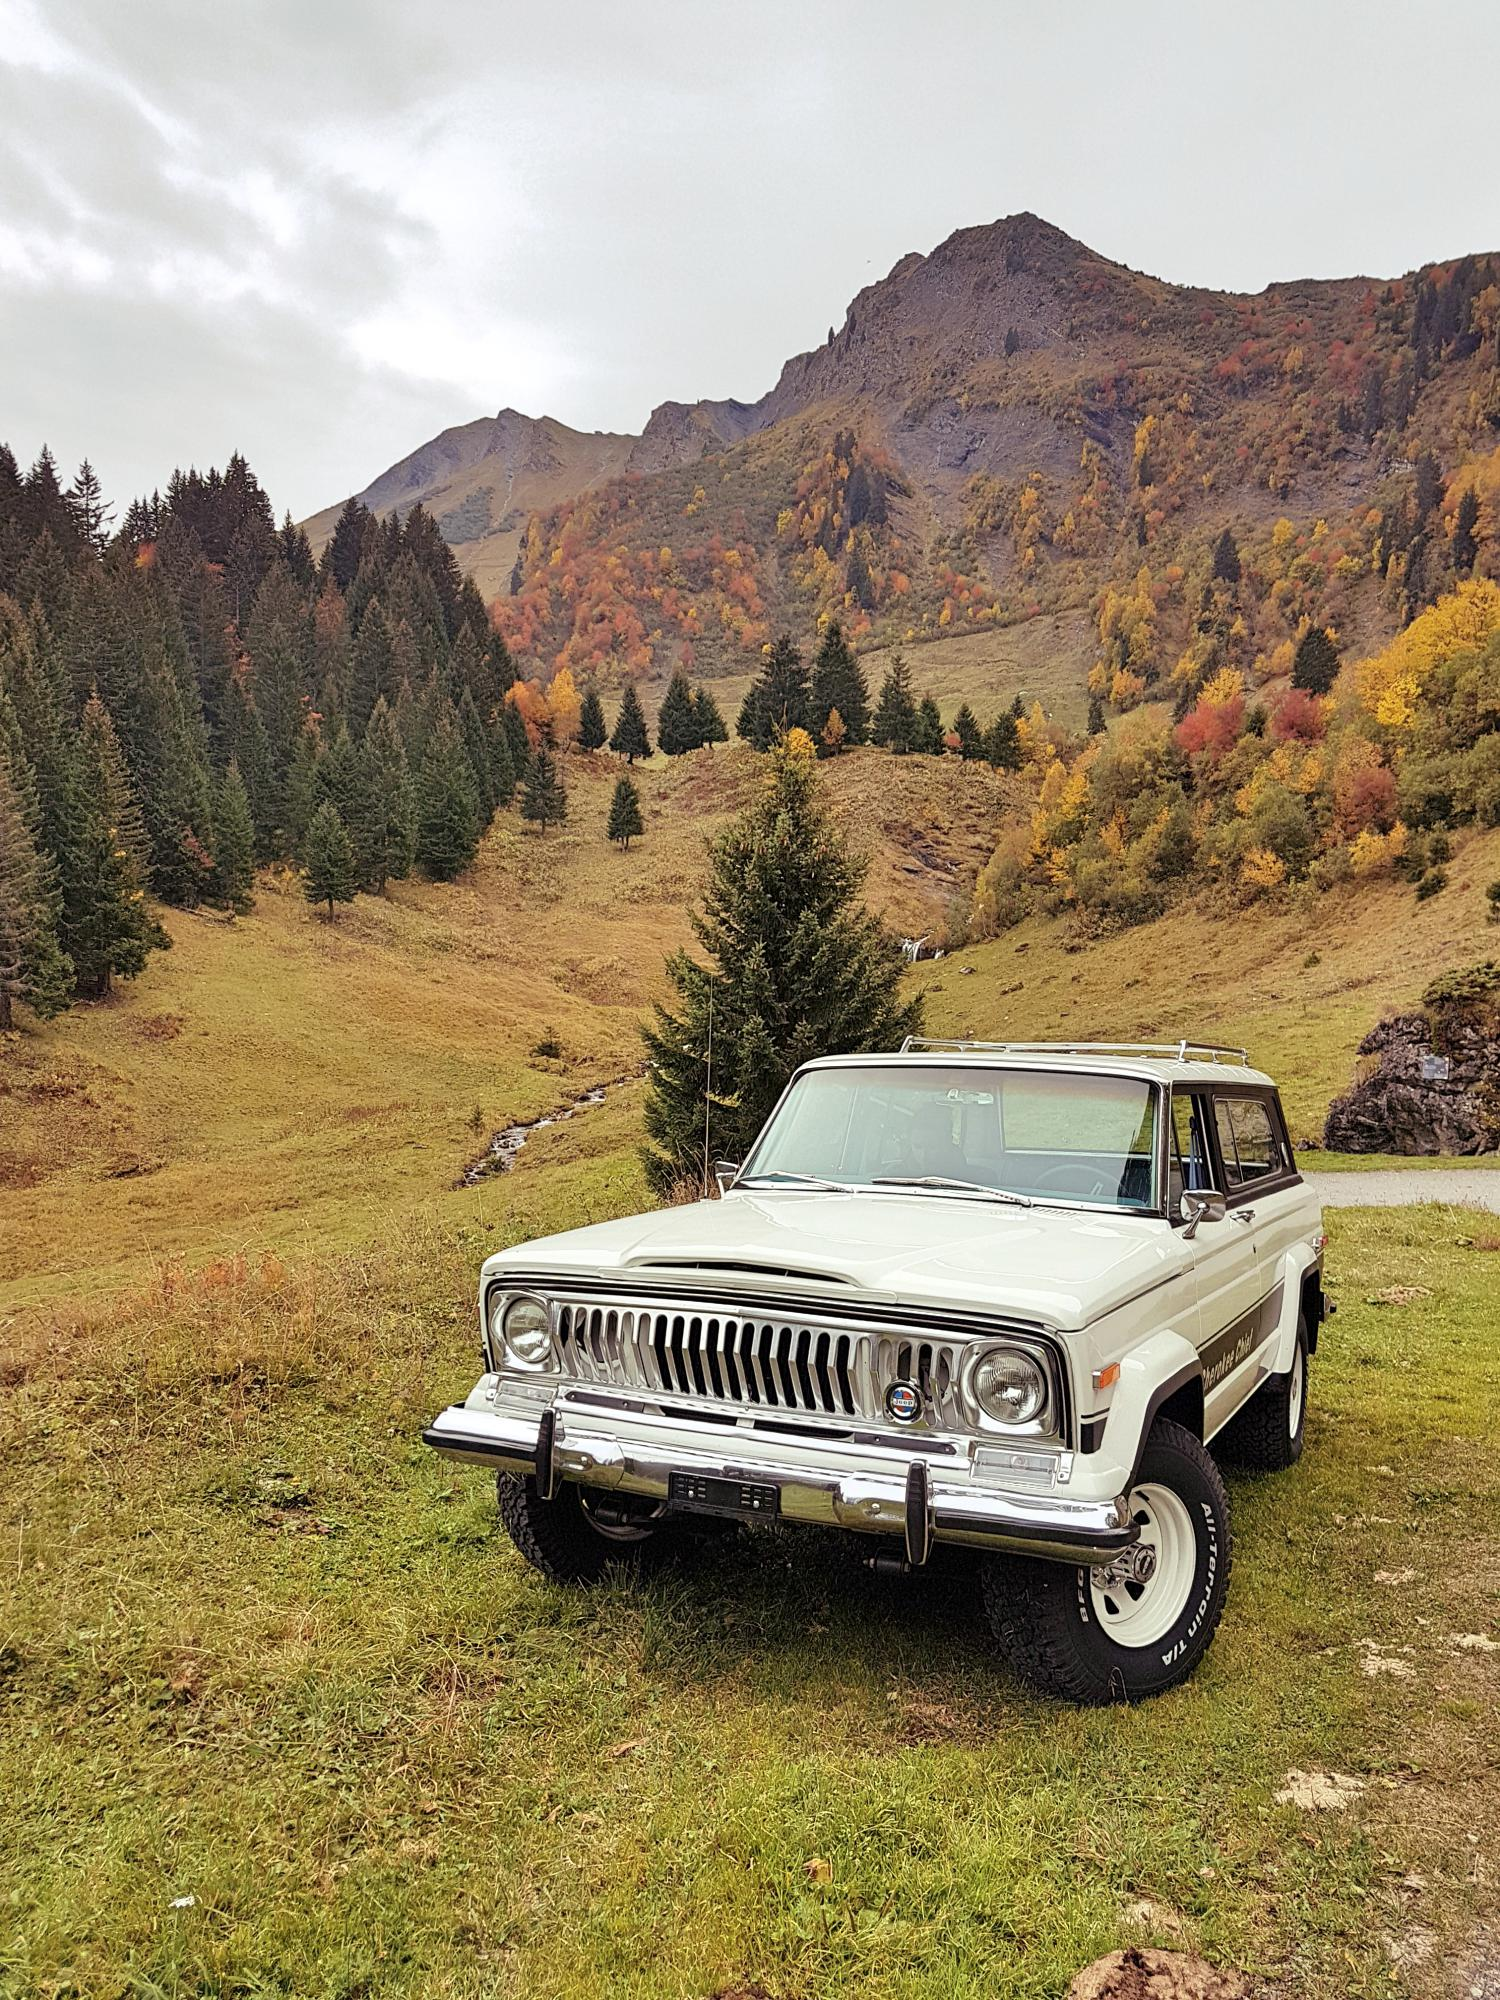 jeep-cherokee-chief-1978-shooting-morgins-switzerland-26.jpg